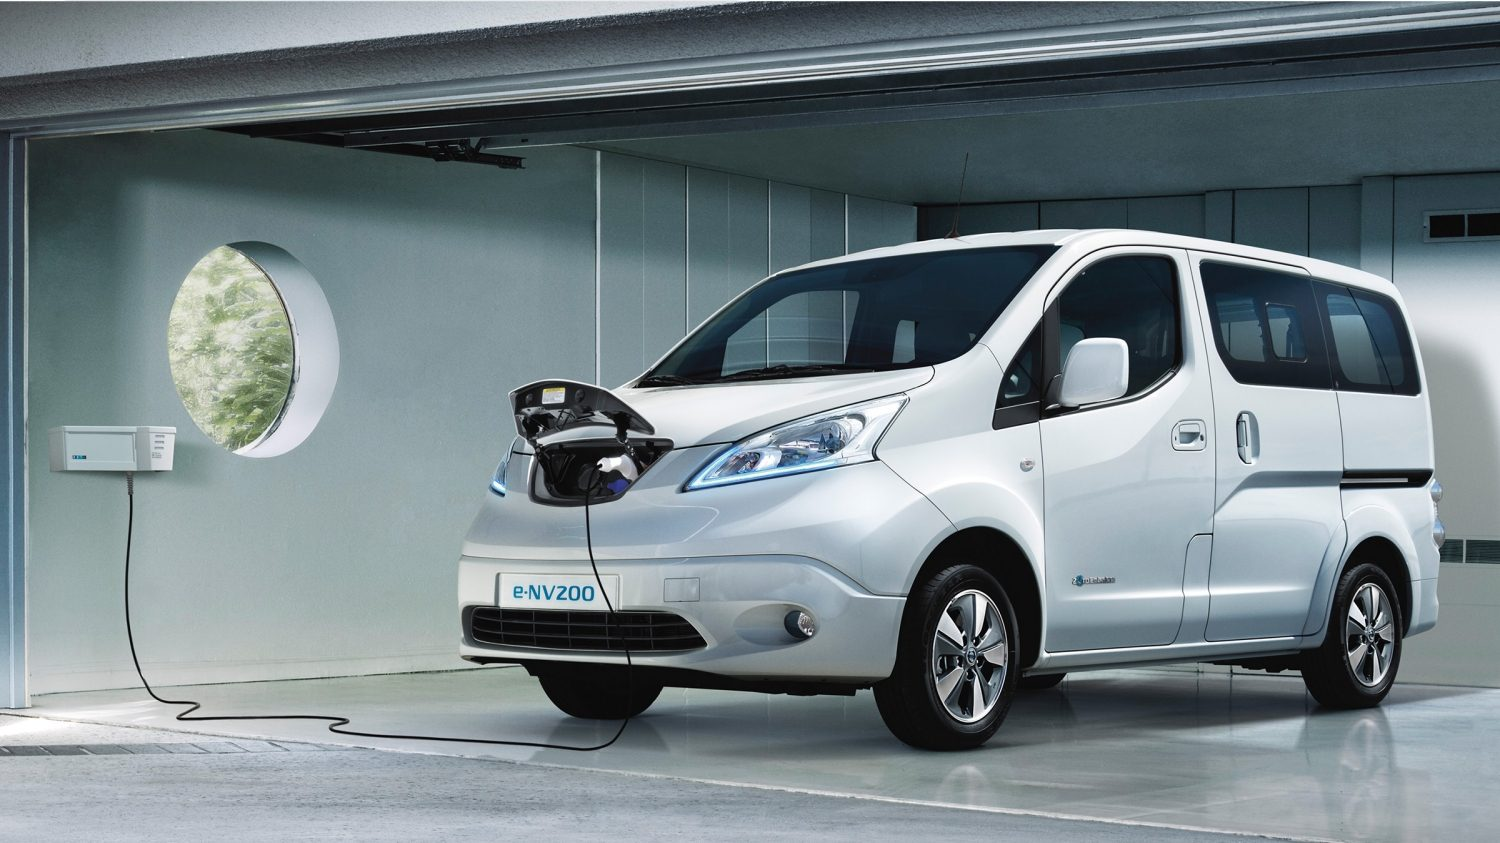 nissan e nv200 evalia 7 sitzer elektroauto familienauto nissan. Black Bedroom Furniture Sets. Home Design Ideas